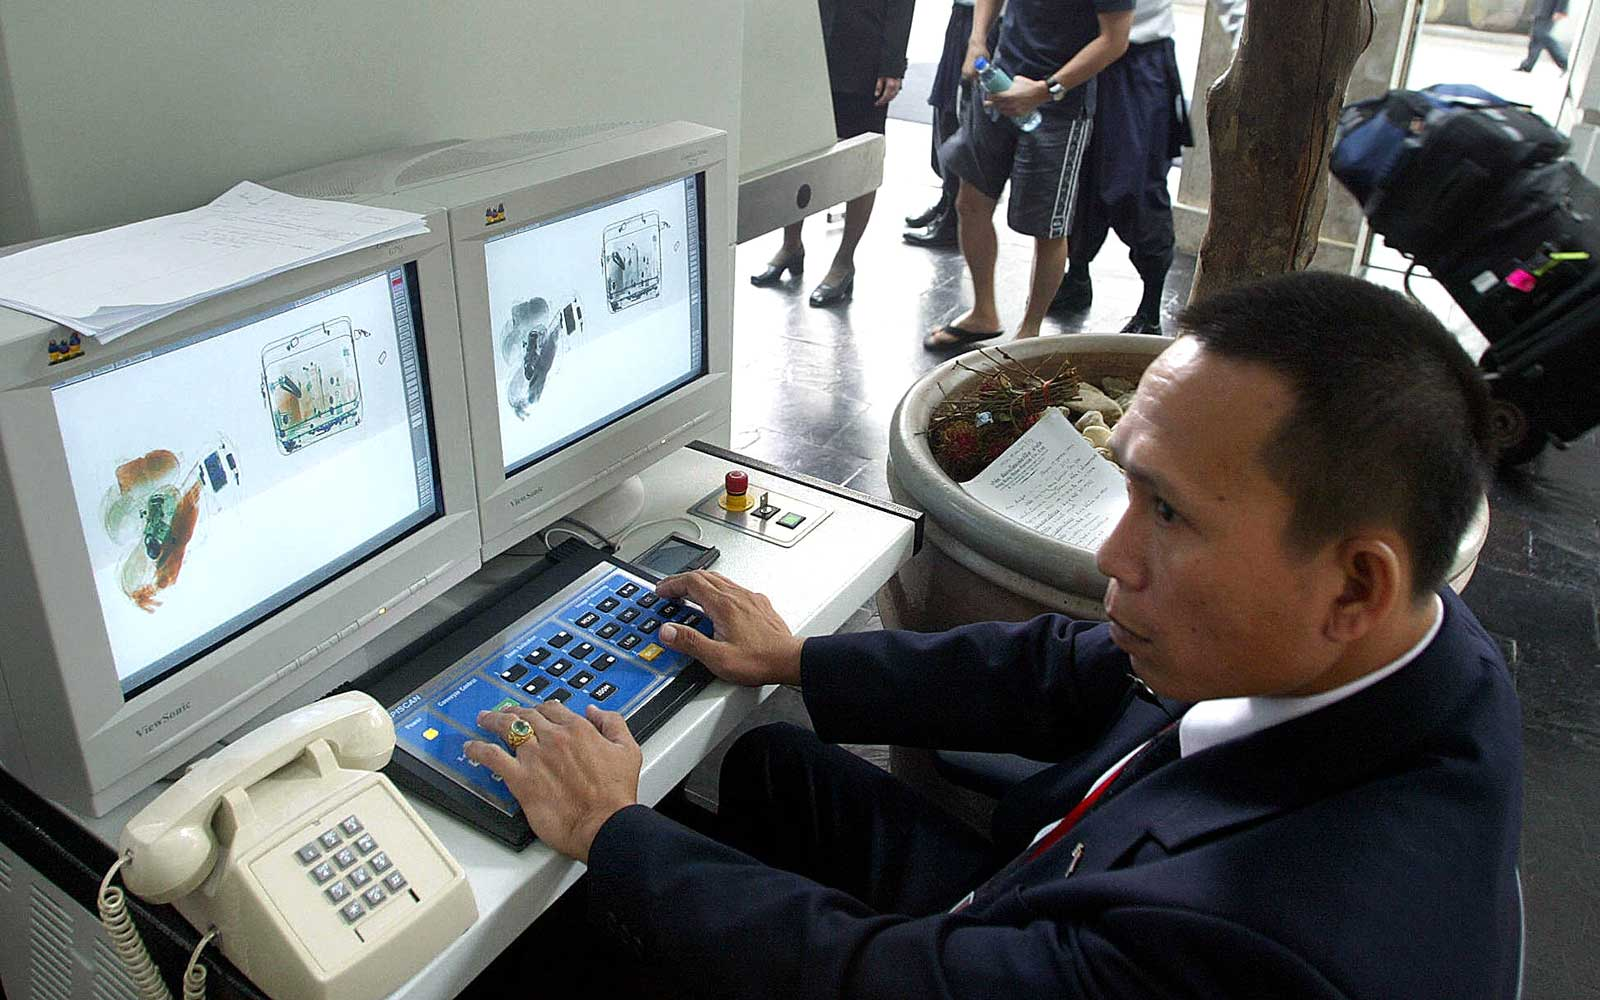 Thai security officer checks bags with an x-ray machine at the Grand Hyatt Erawan